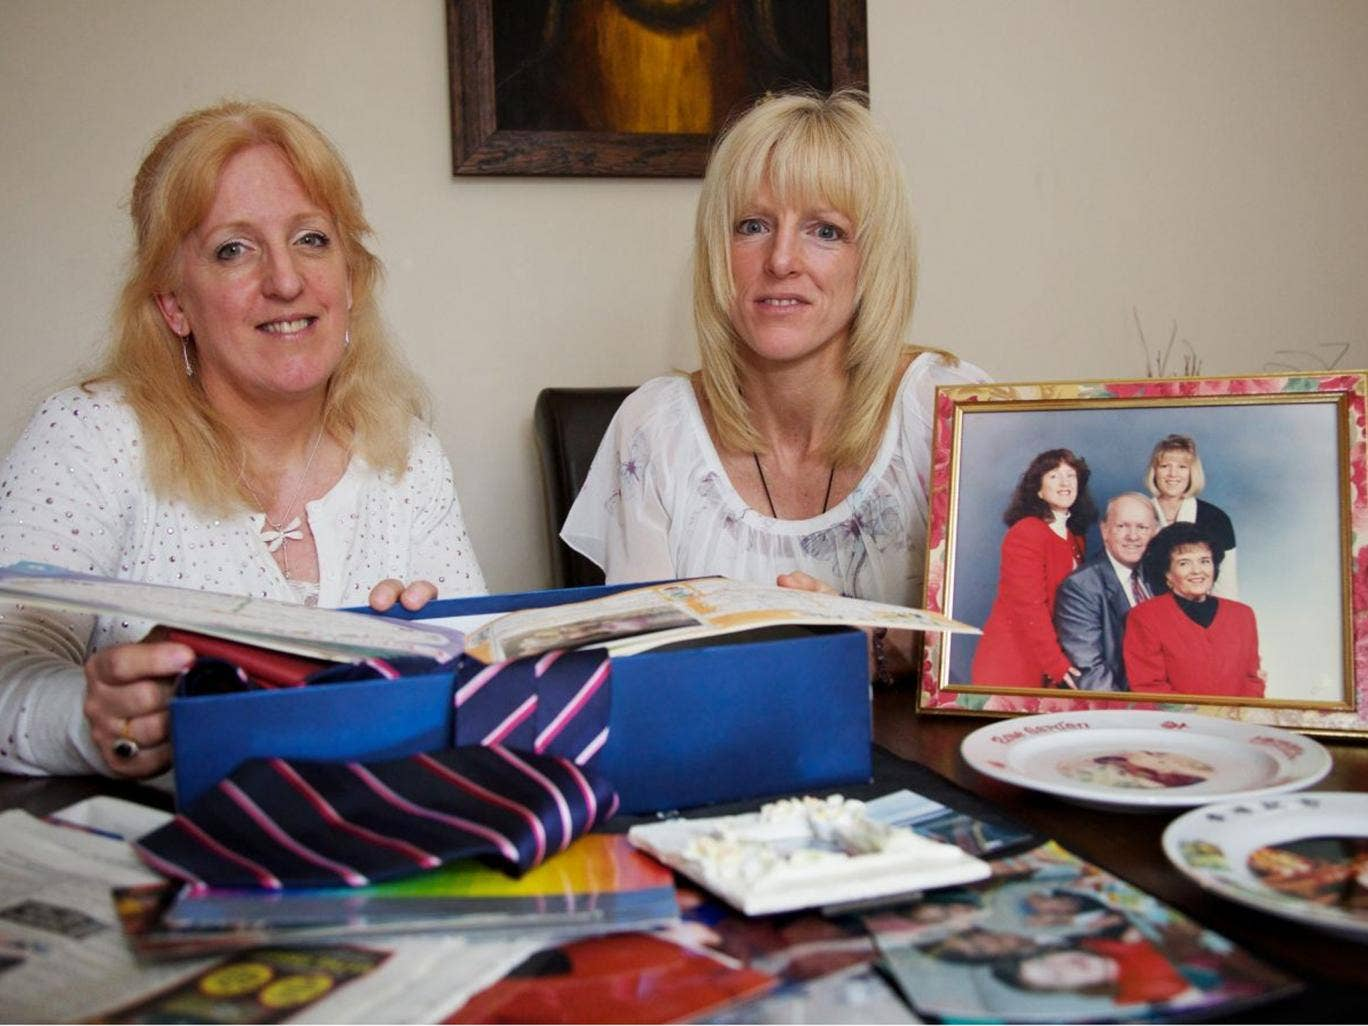 Nicky Locking, left, and Lisa Young, daughters of the Glovers, beside a picture of the family in 1994